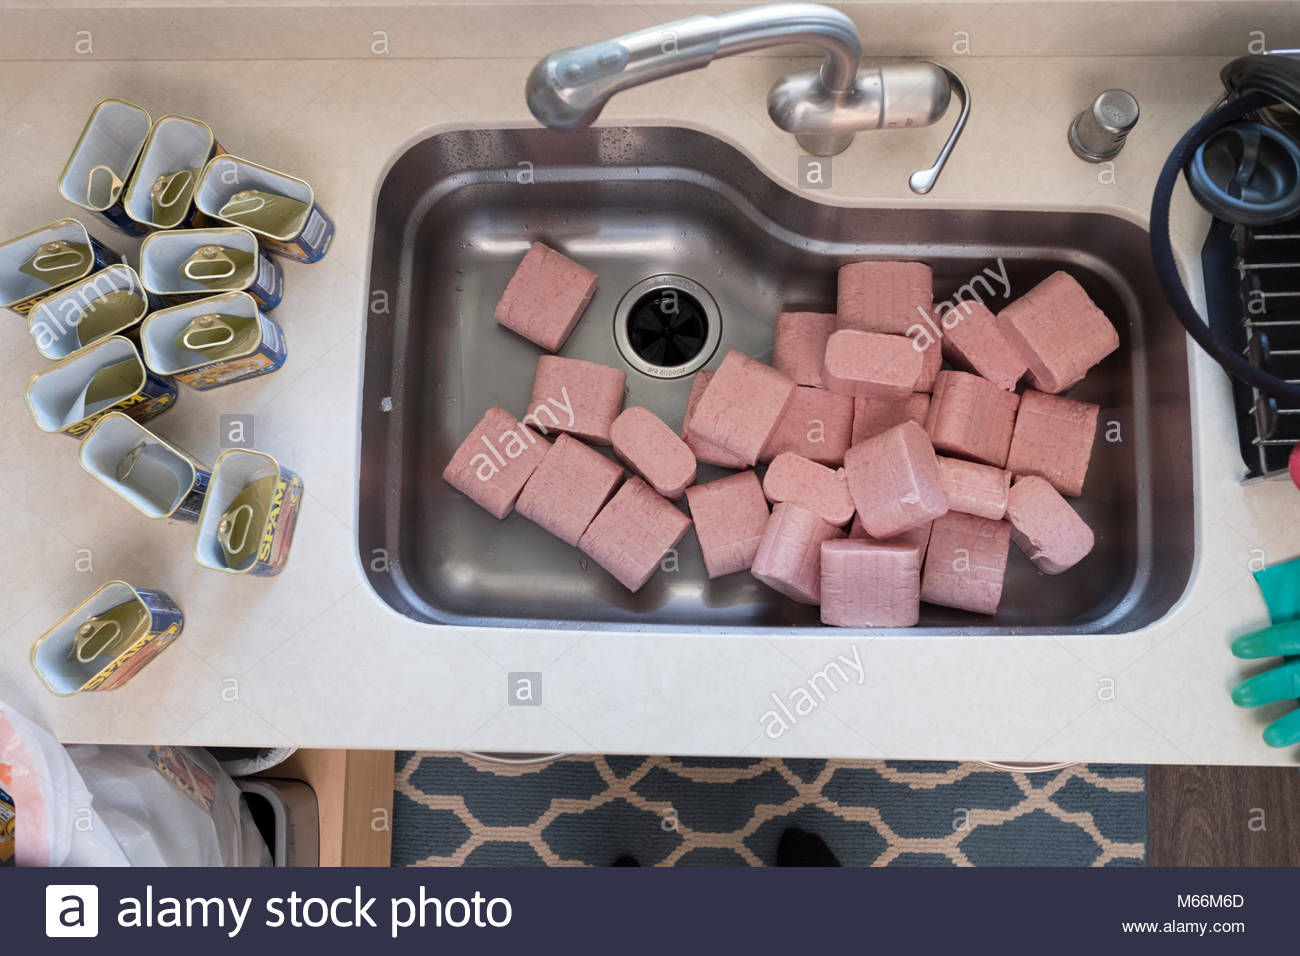 Spoiled SPAM dumped into sink, USA - Stock Image